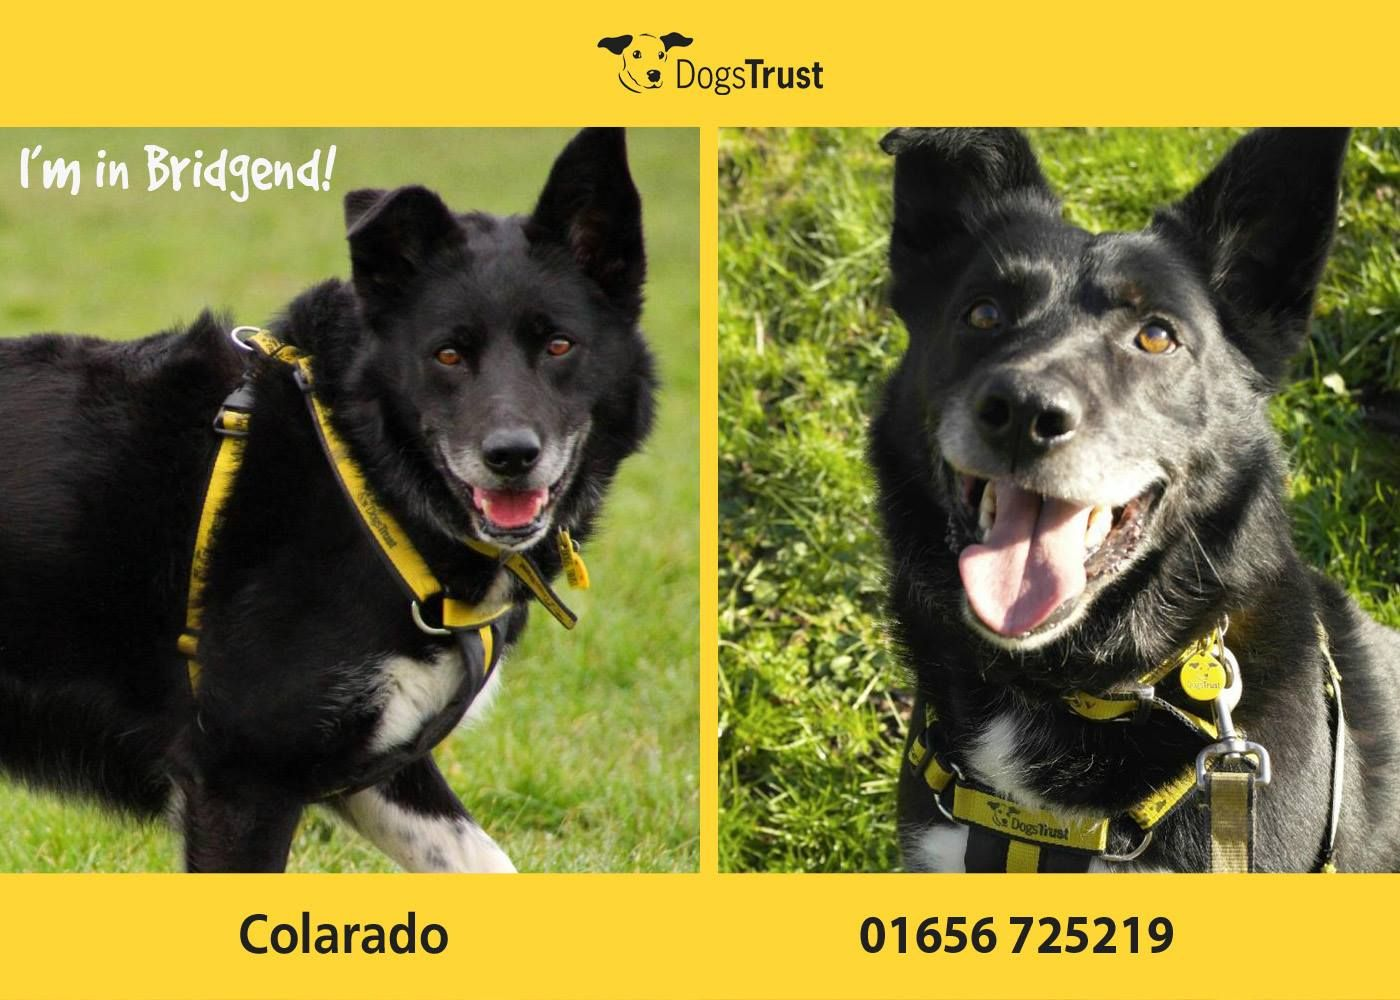 Colarado At Dogs Trust Bridgend Is A Big Lad Full Of Fun He Loves His Toys And He Would Like A Big Box Full Of Toys In His New Home